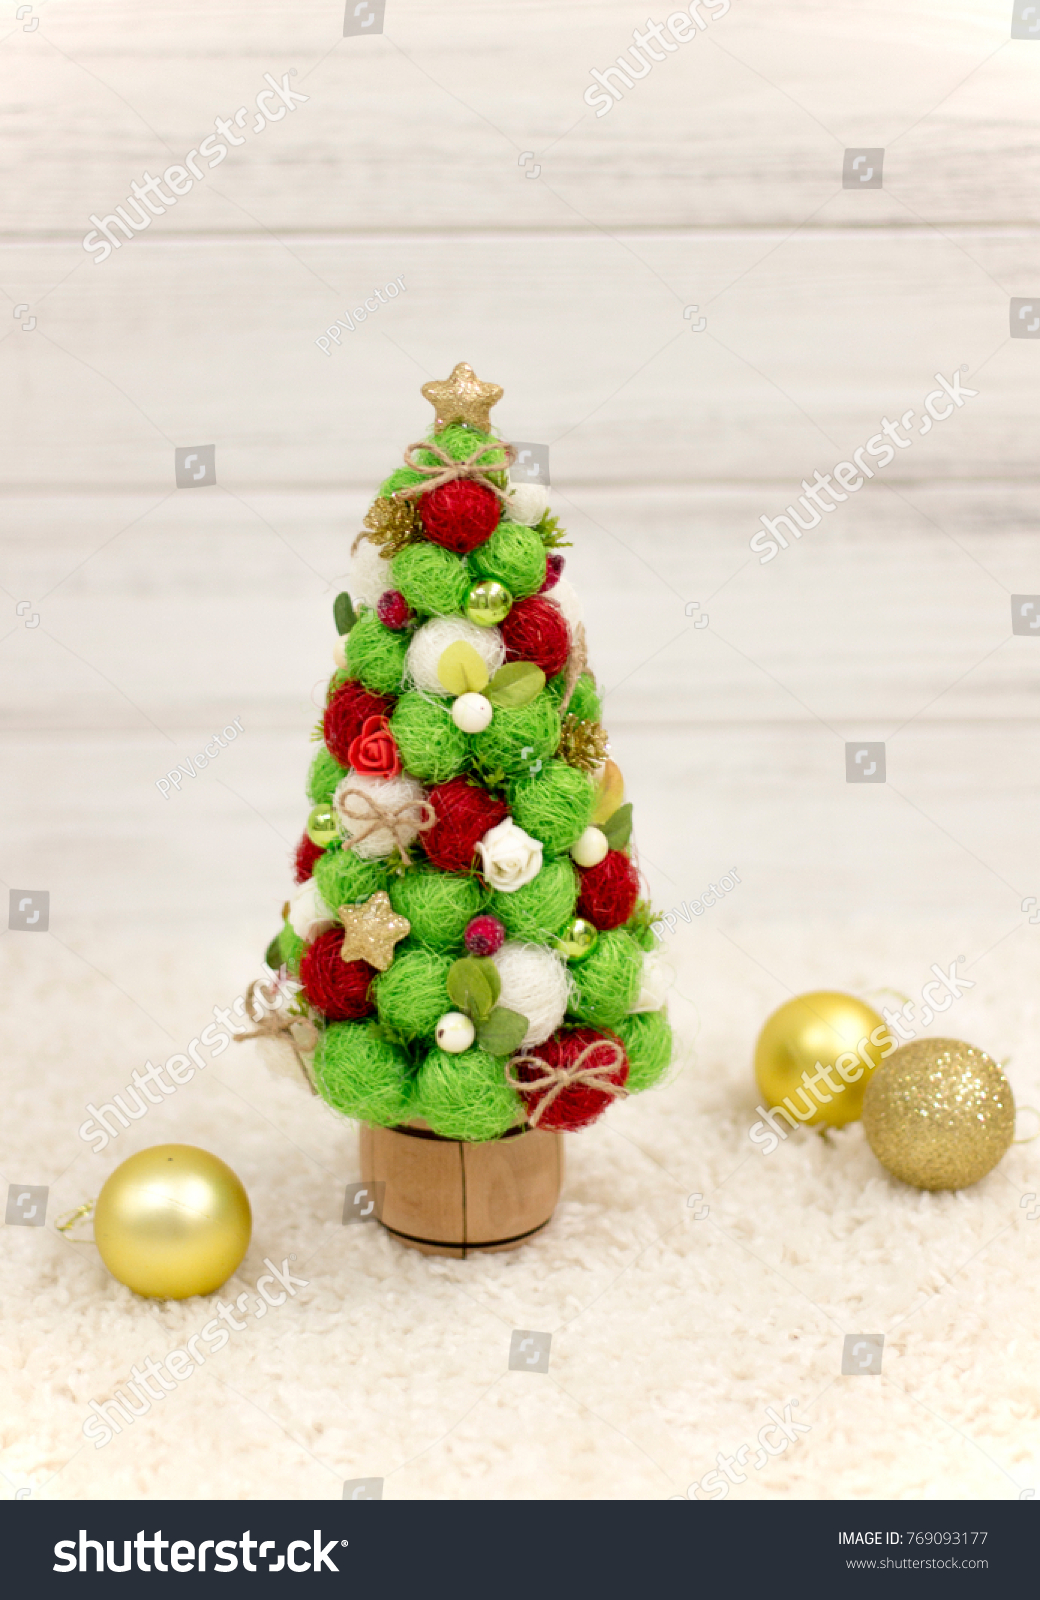 decorative christmas tree handmade new year decorations new year and christmas wallpapers